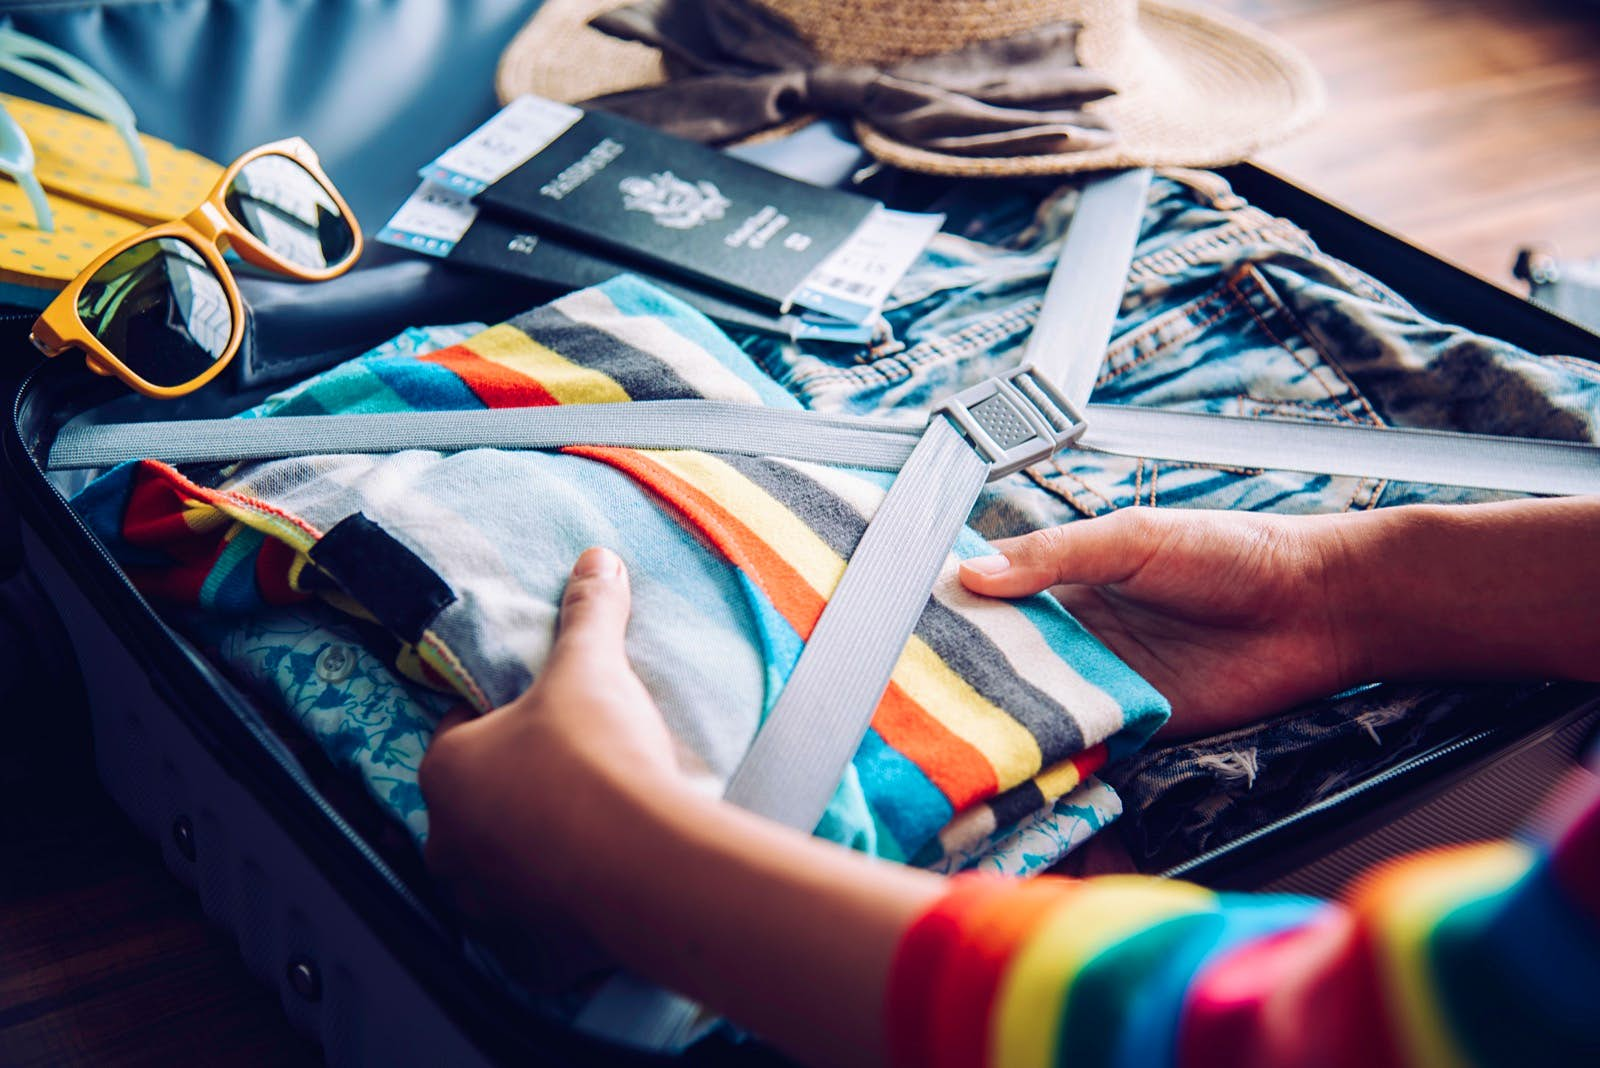 A woman packs a striped, colorful shirt into a suitcase, with sunglasses and a pair of passports nearby; tips for a long-haul flight